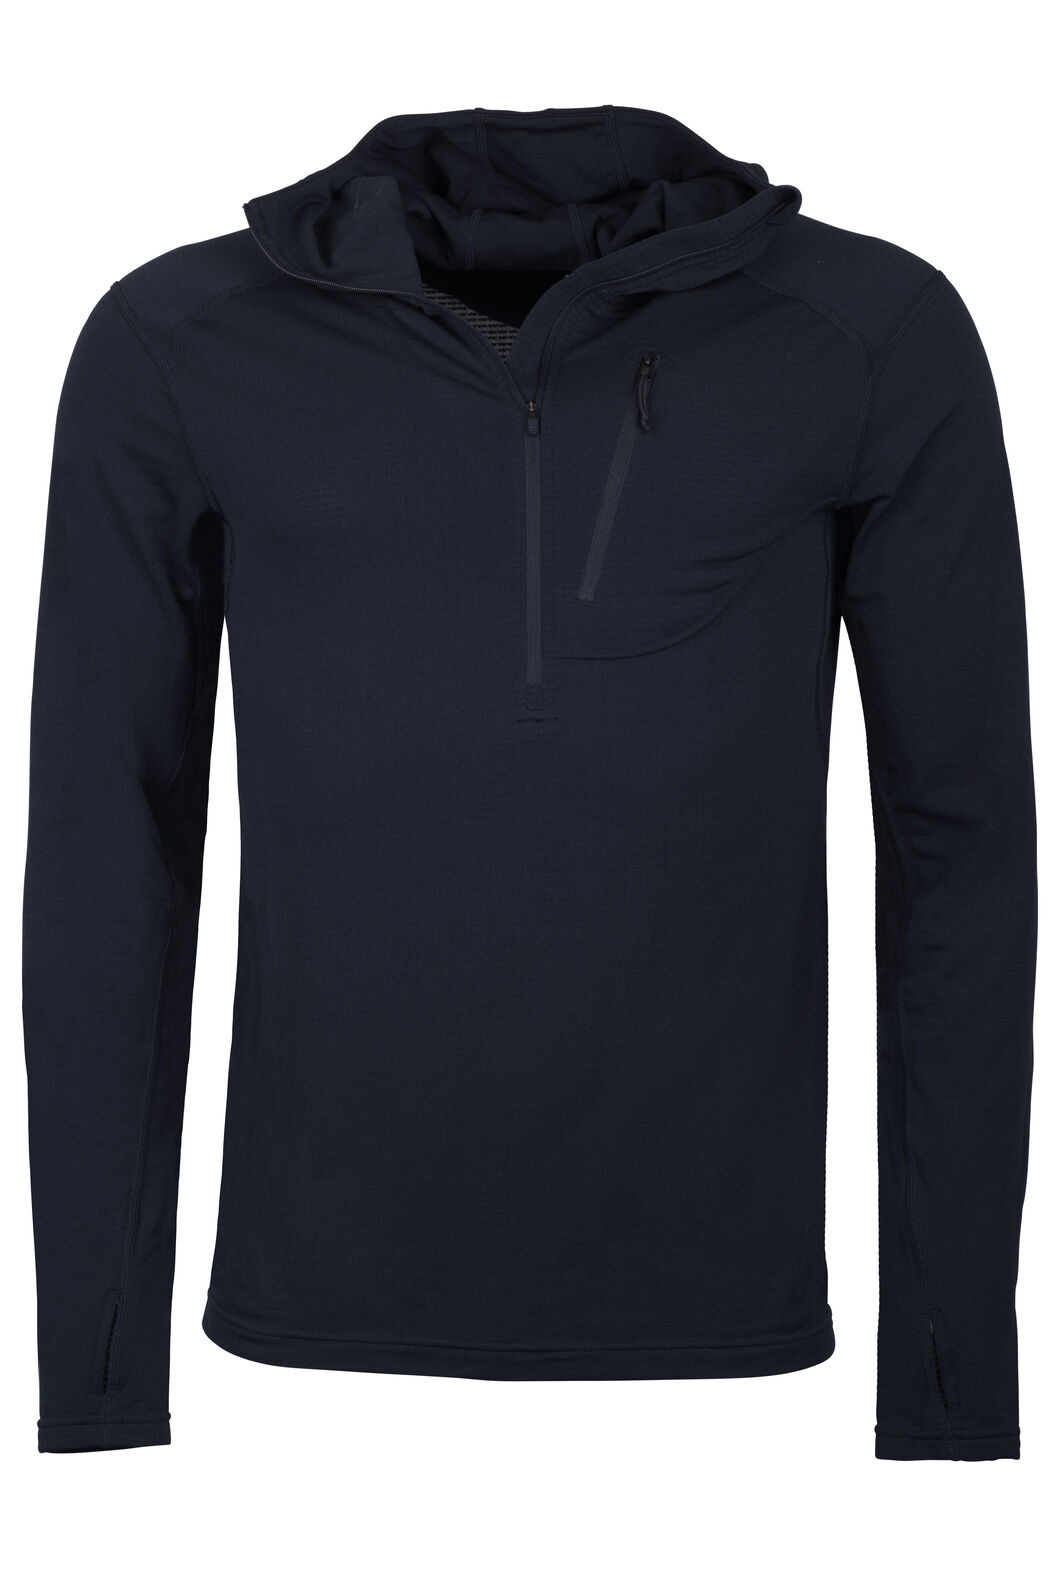 ProThermal Hooded Top - Men's, Black, hi-res